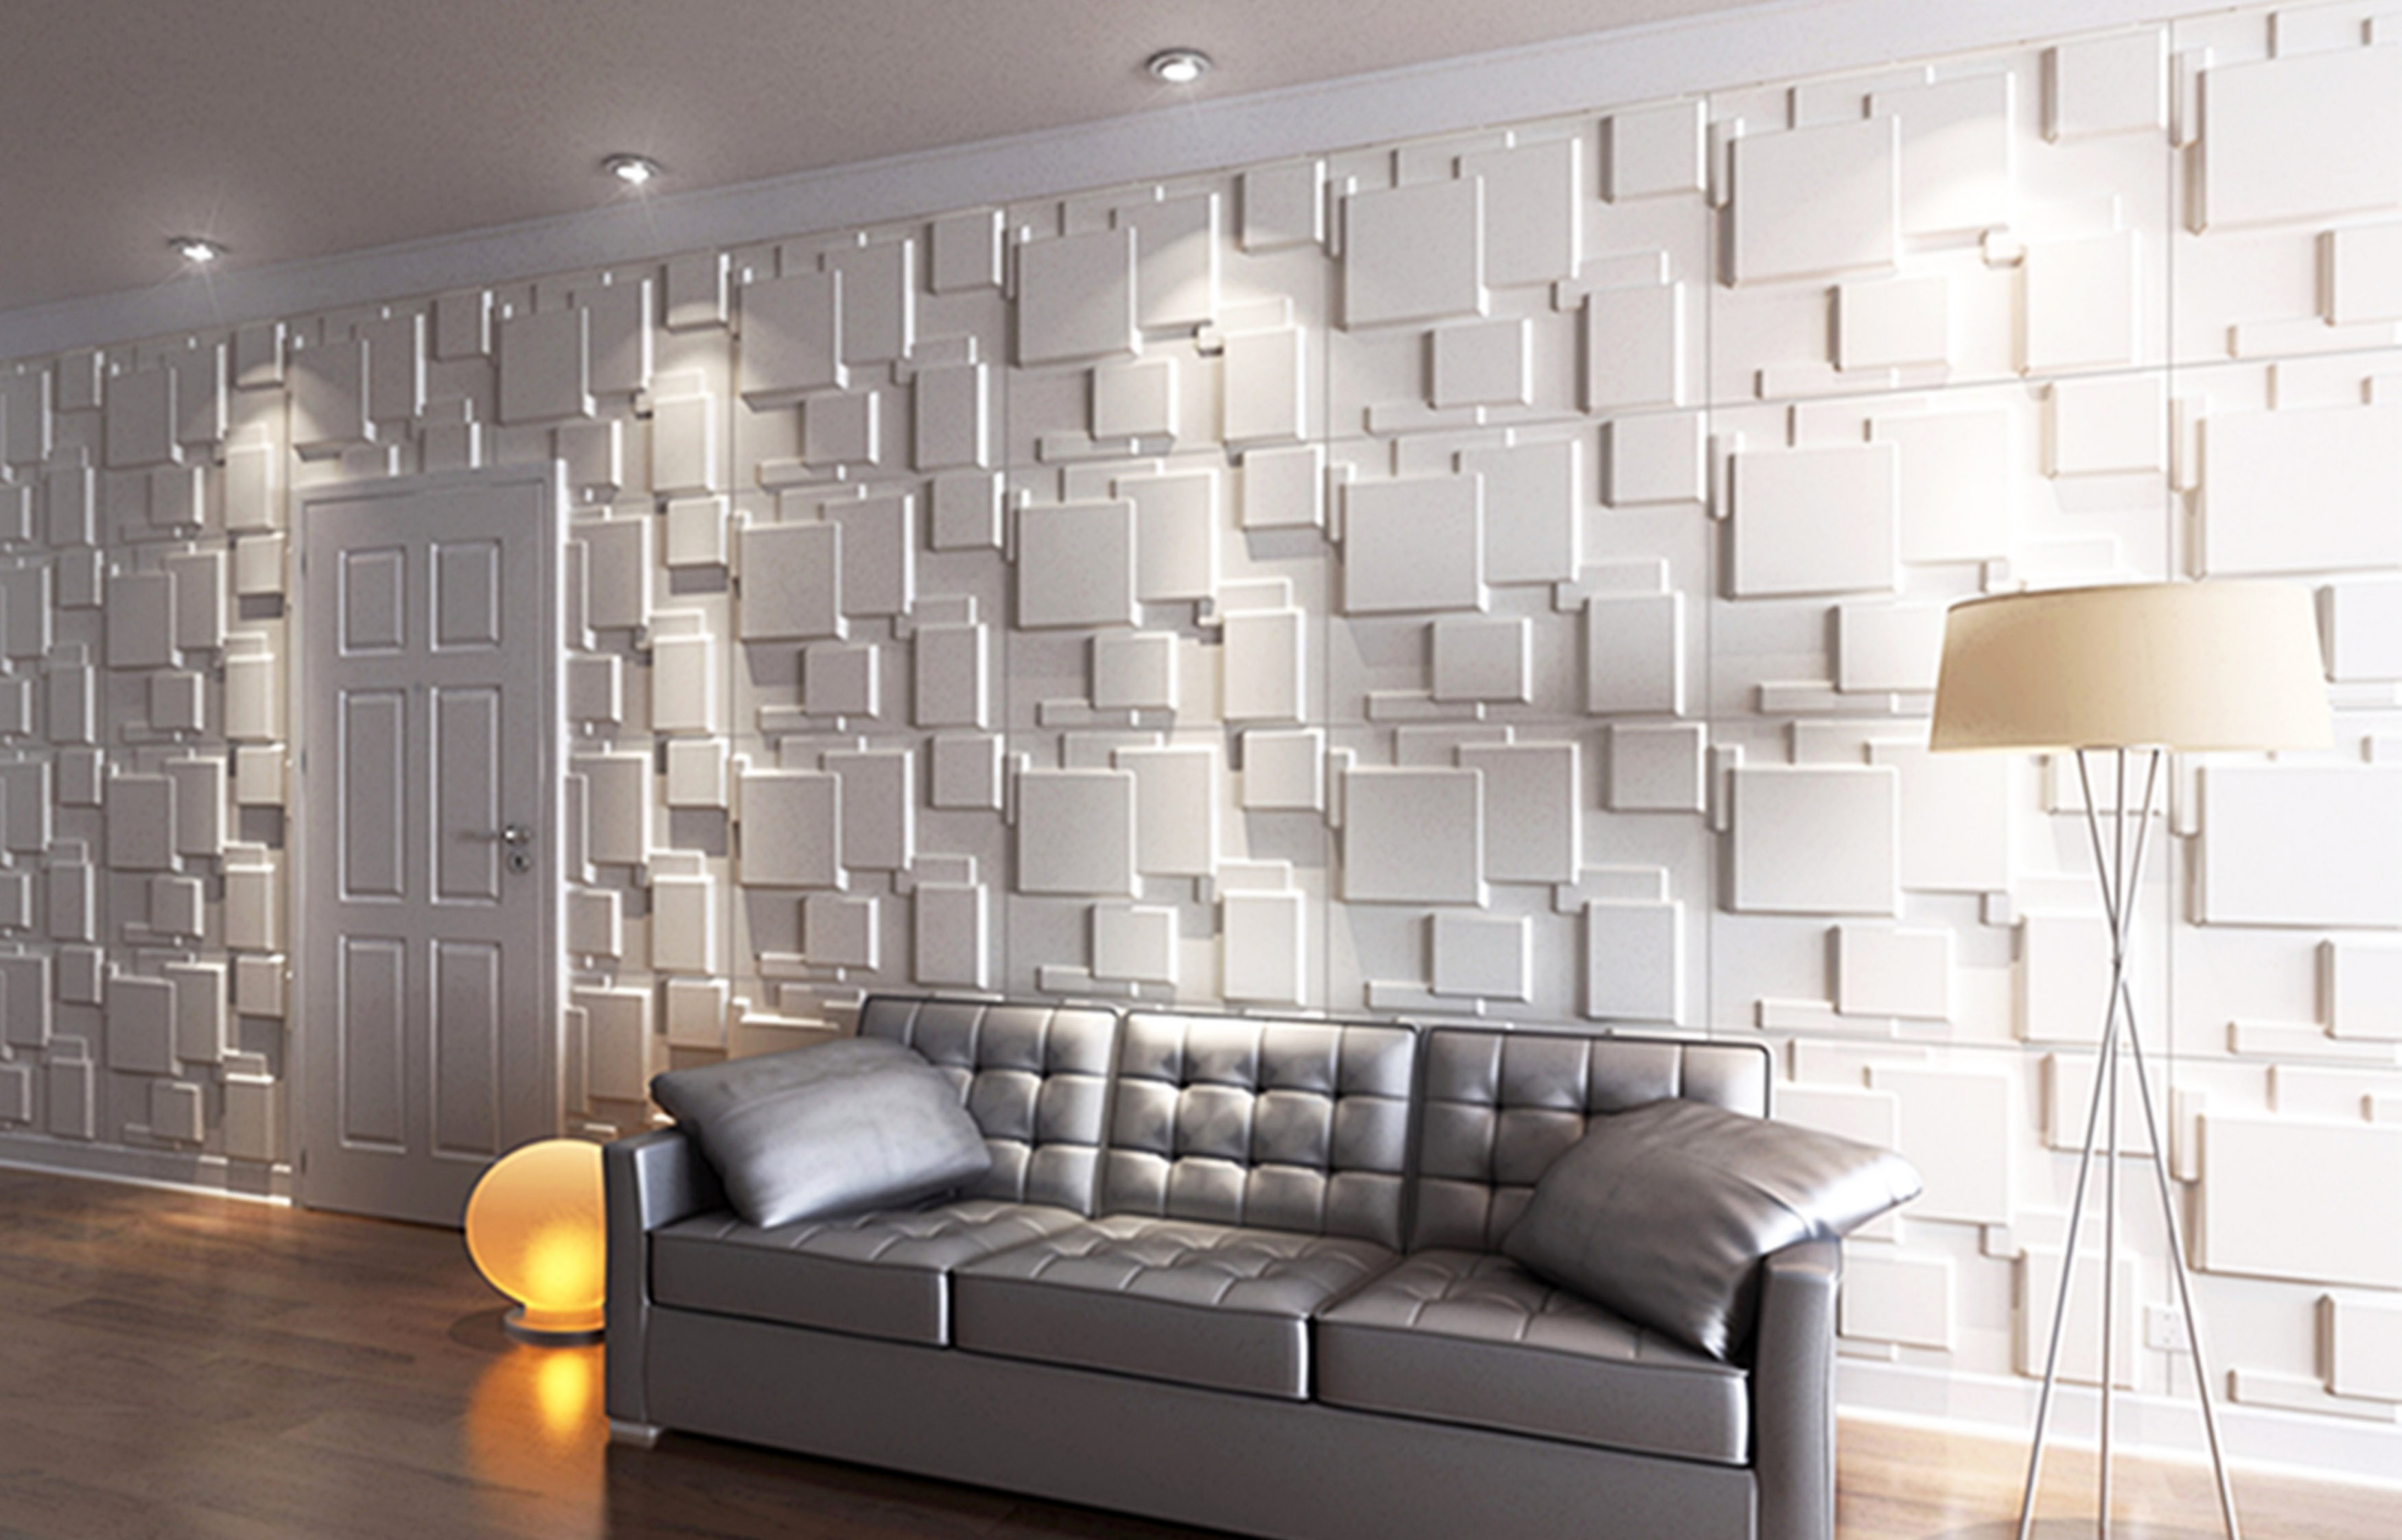 Cool Wall Covering Ideas : Wall covering ideas for a new home decoration roy